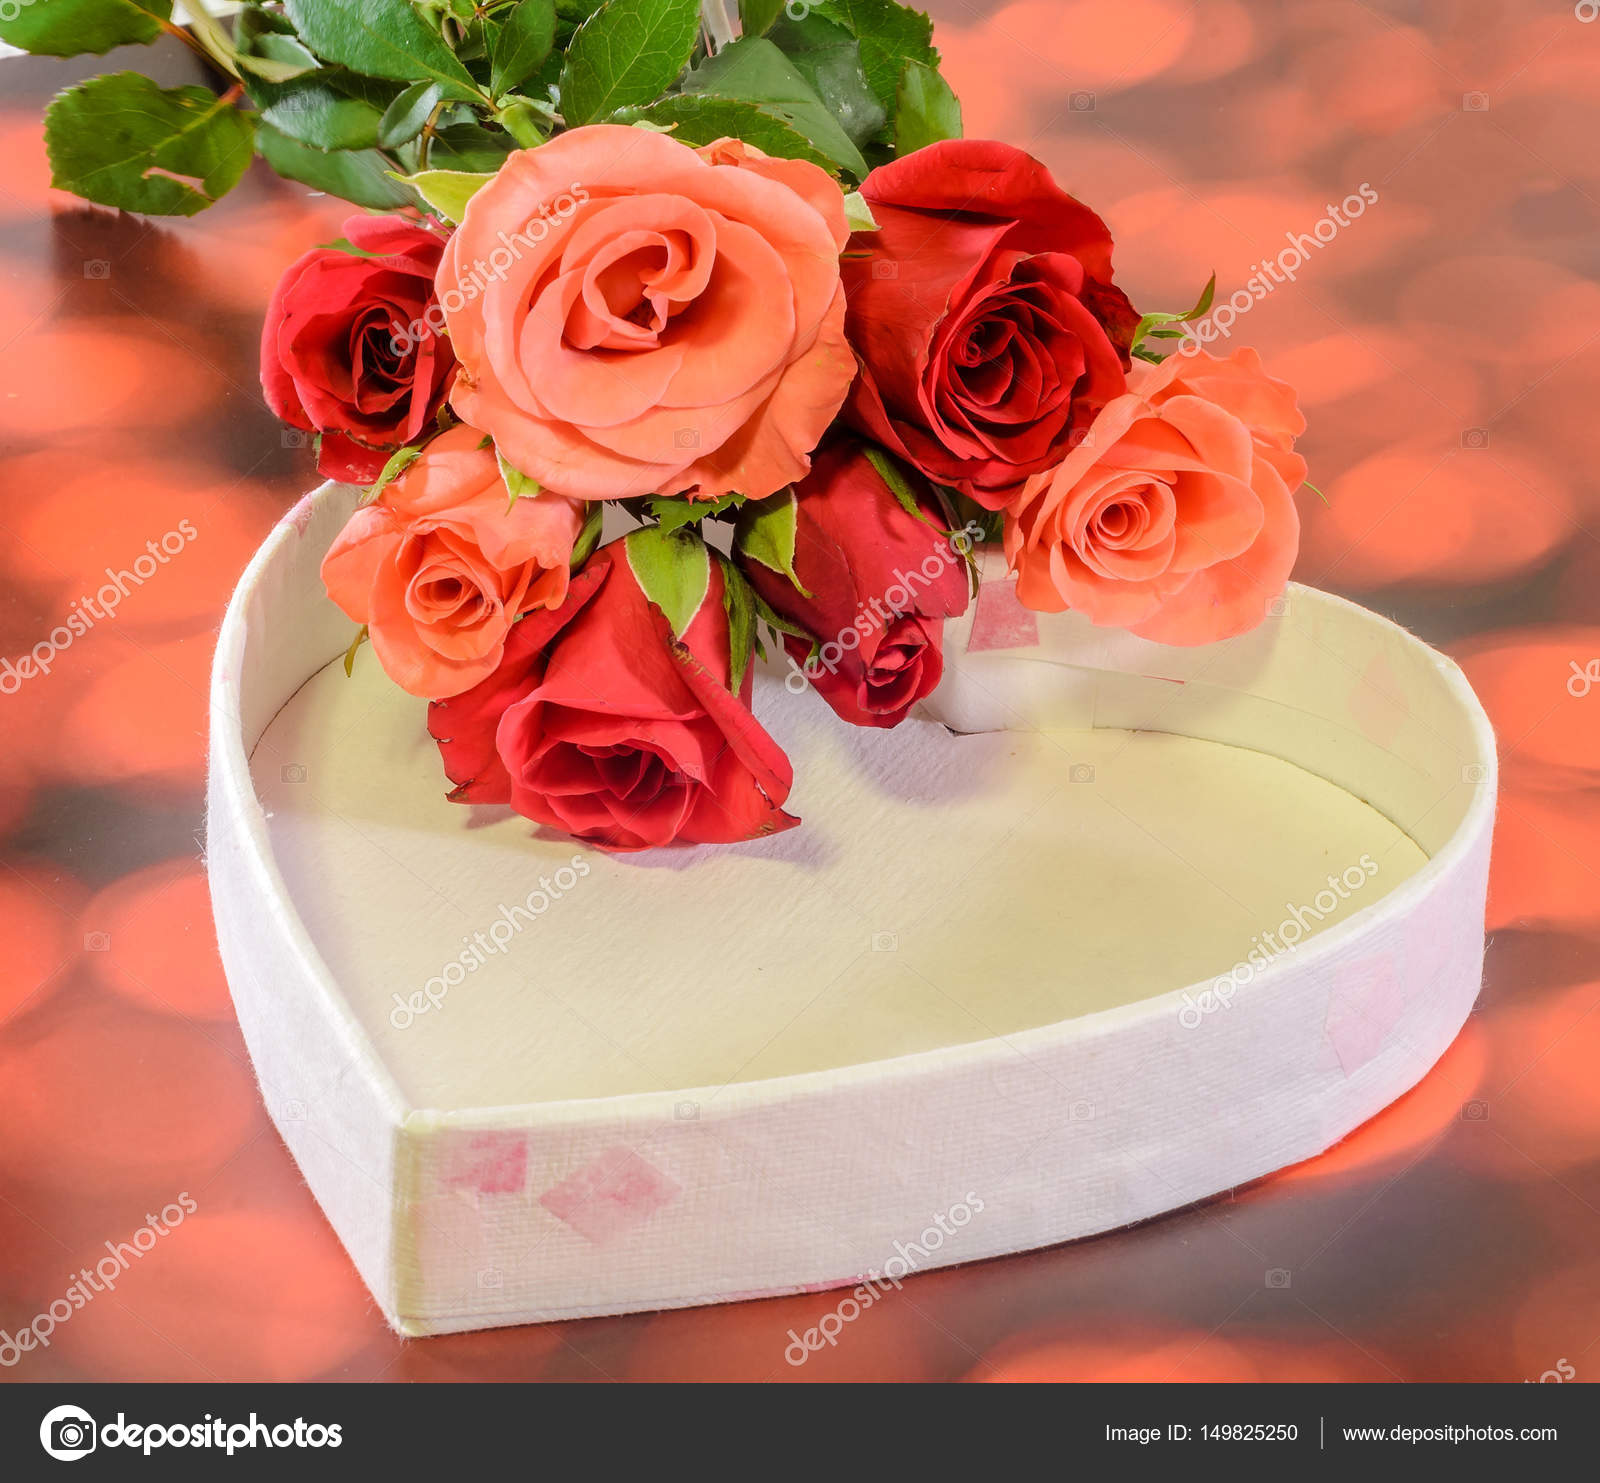 Red and orange roses flowers with heart shape gift box, red